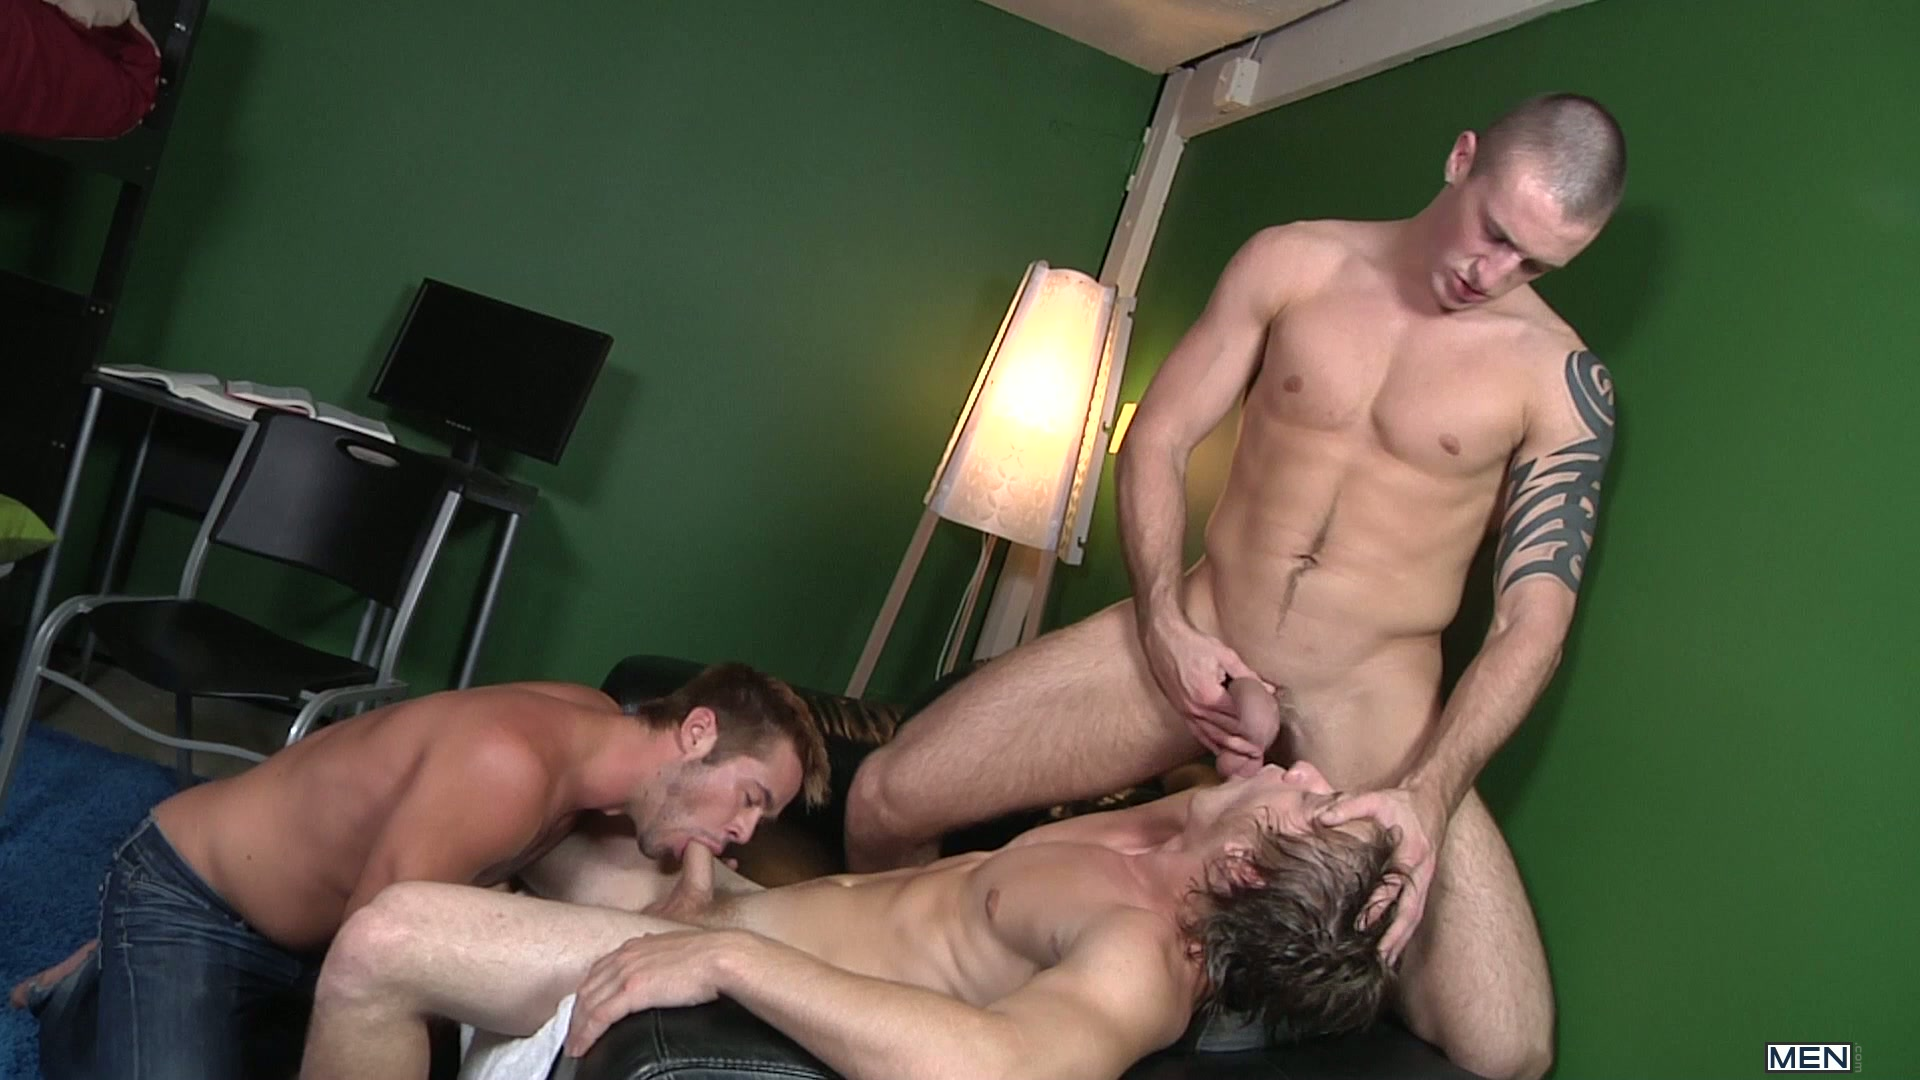 Watch Homance Part 3 – Bdas – Big Dicks At School – Connor Kline – Tom Faulk And Mike De Marko (MEN.COM) Gay Porn Tube Videos Gifs And Free XXX HD Sex Movies Photos Online